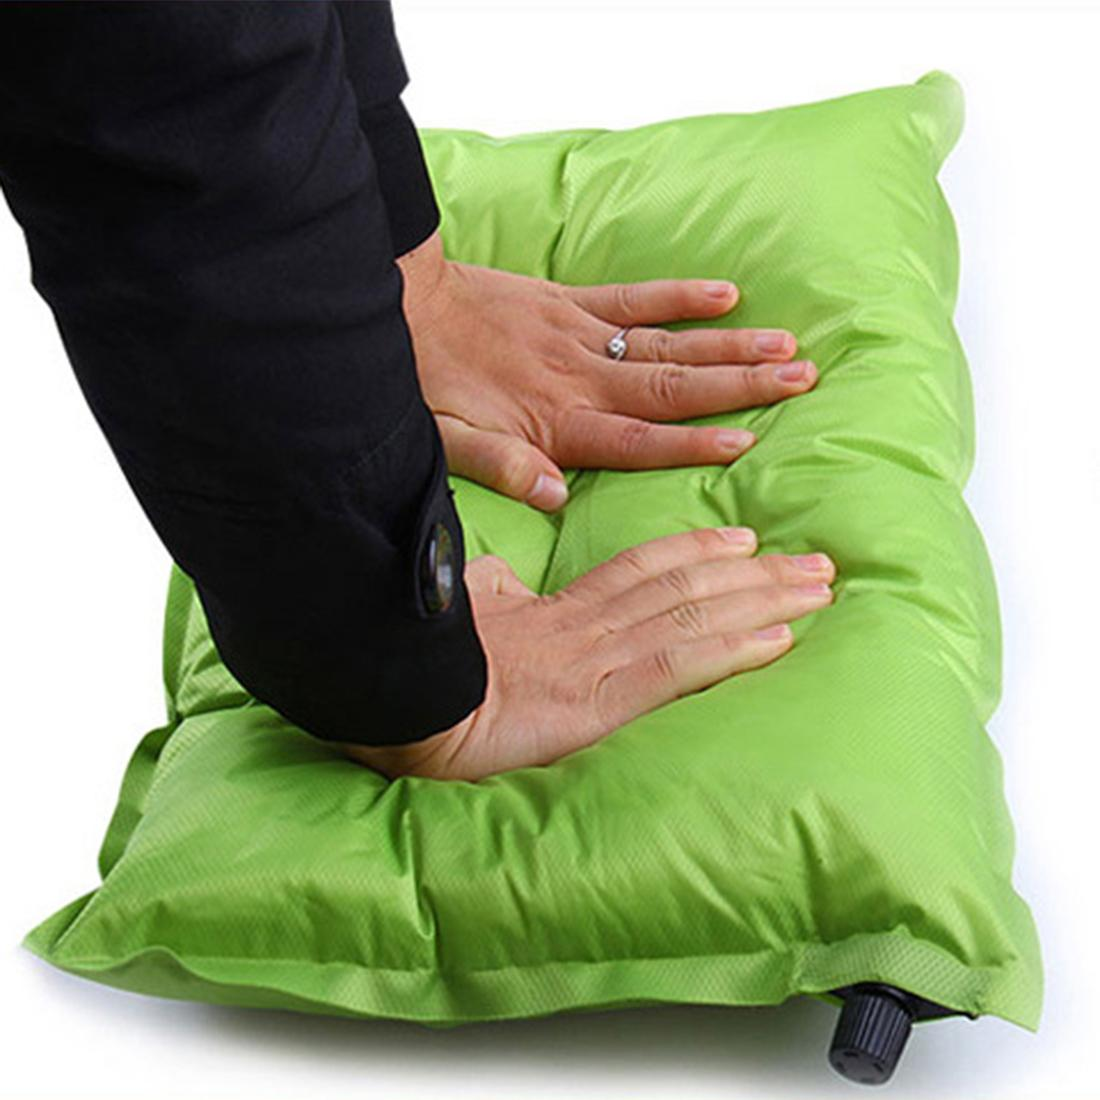 acheter 2016 nouveau air coussin camping gonflable blow up coussin